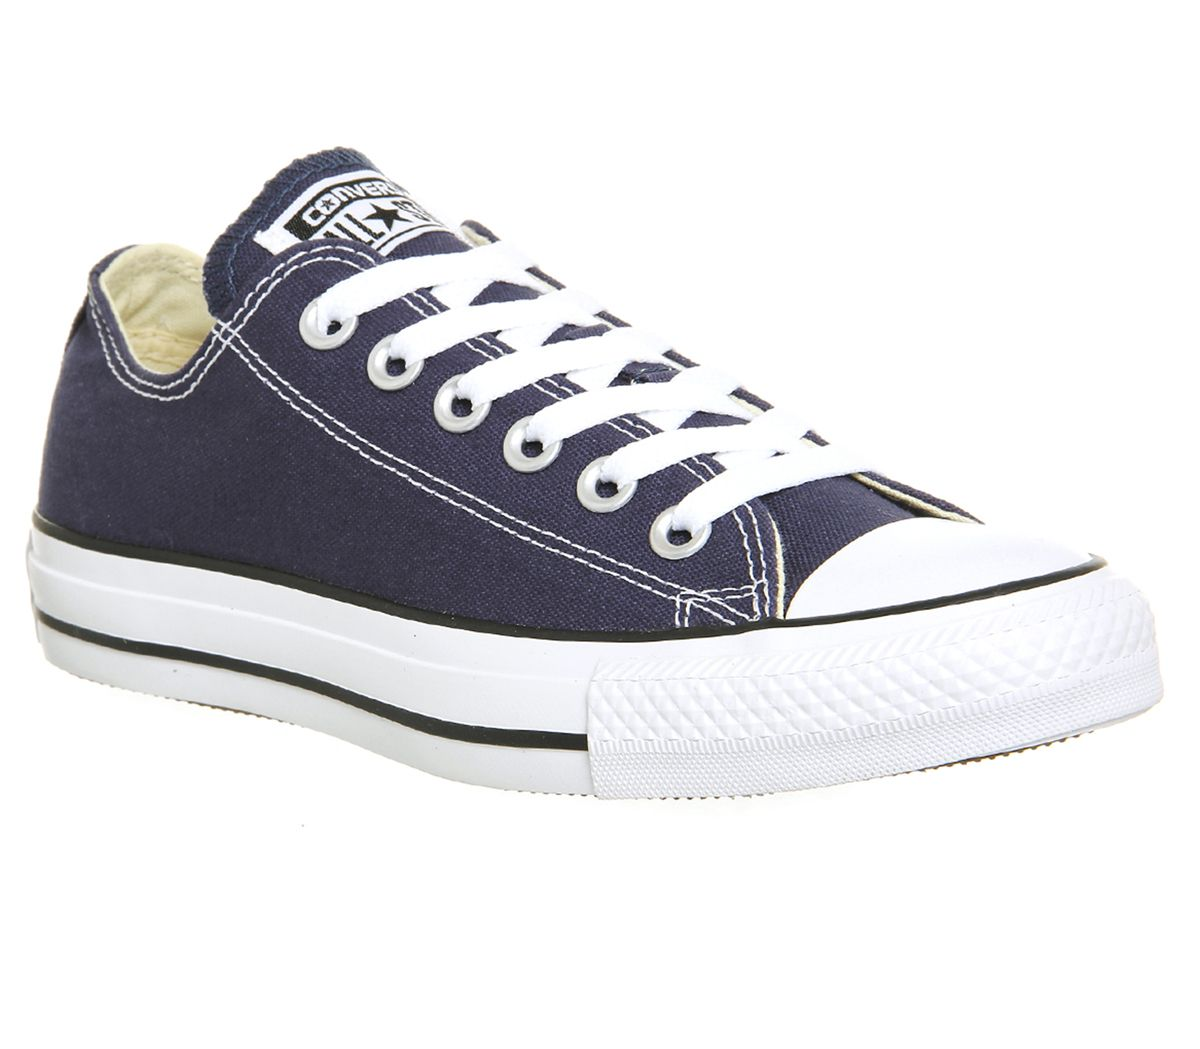 65b7638417867f Converse All Star Low Navy Canvas - Unisex Sports